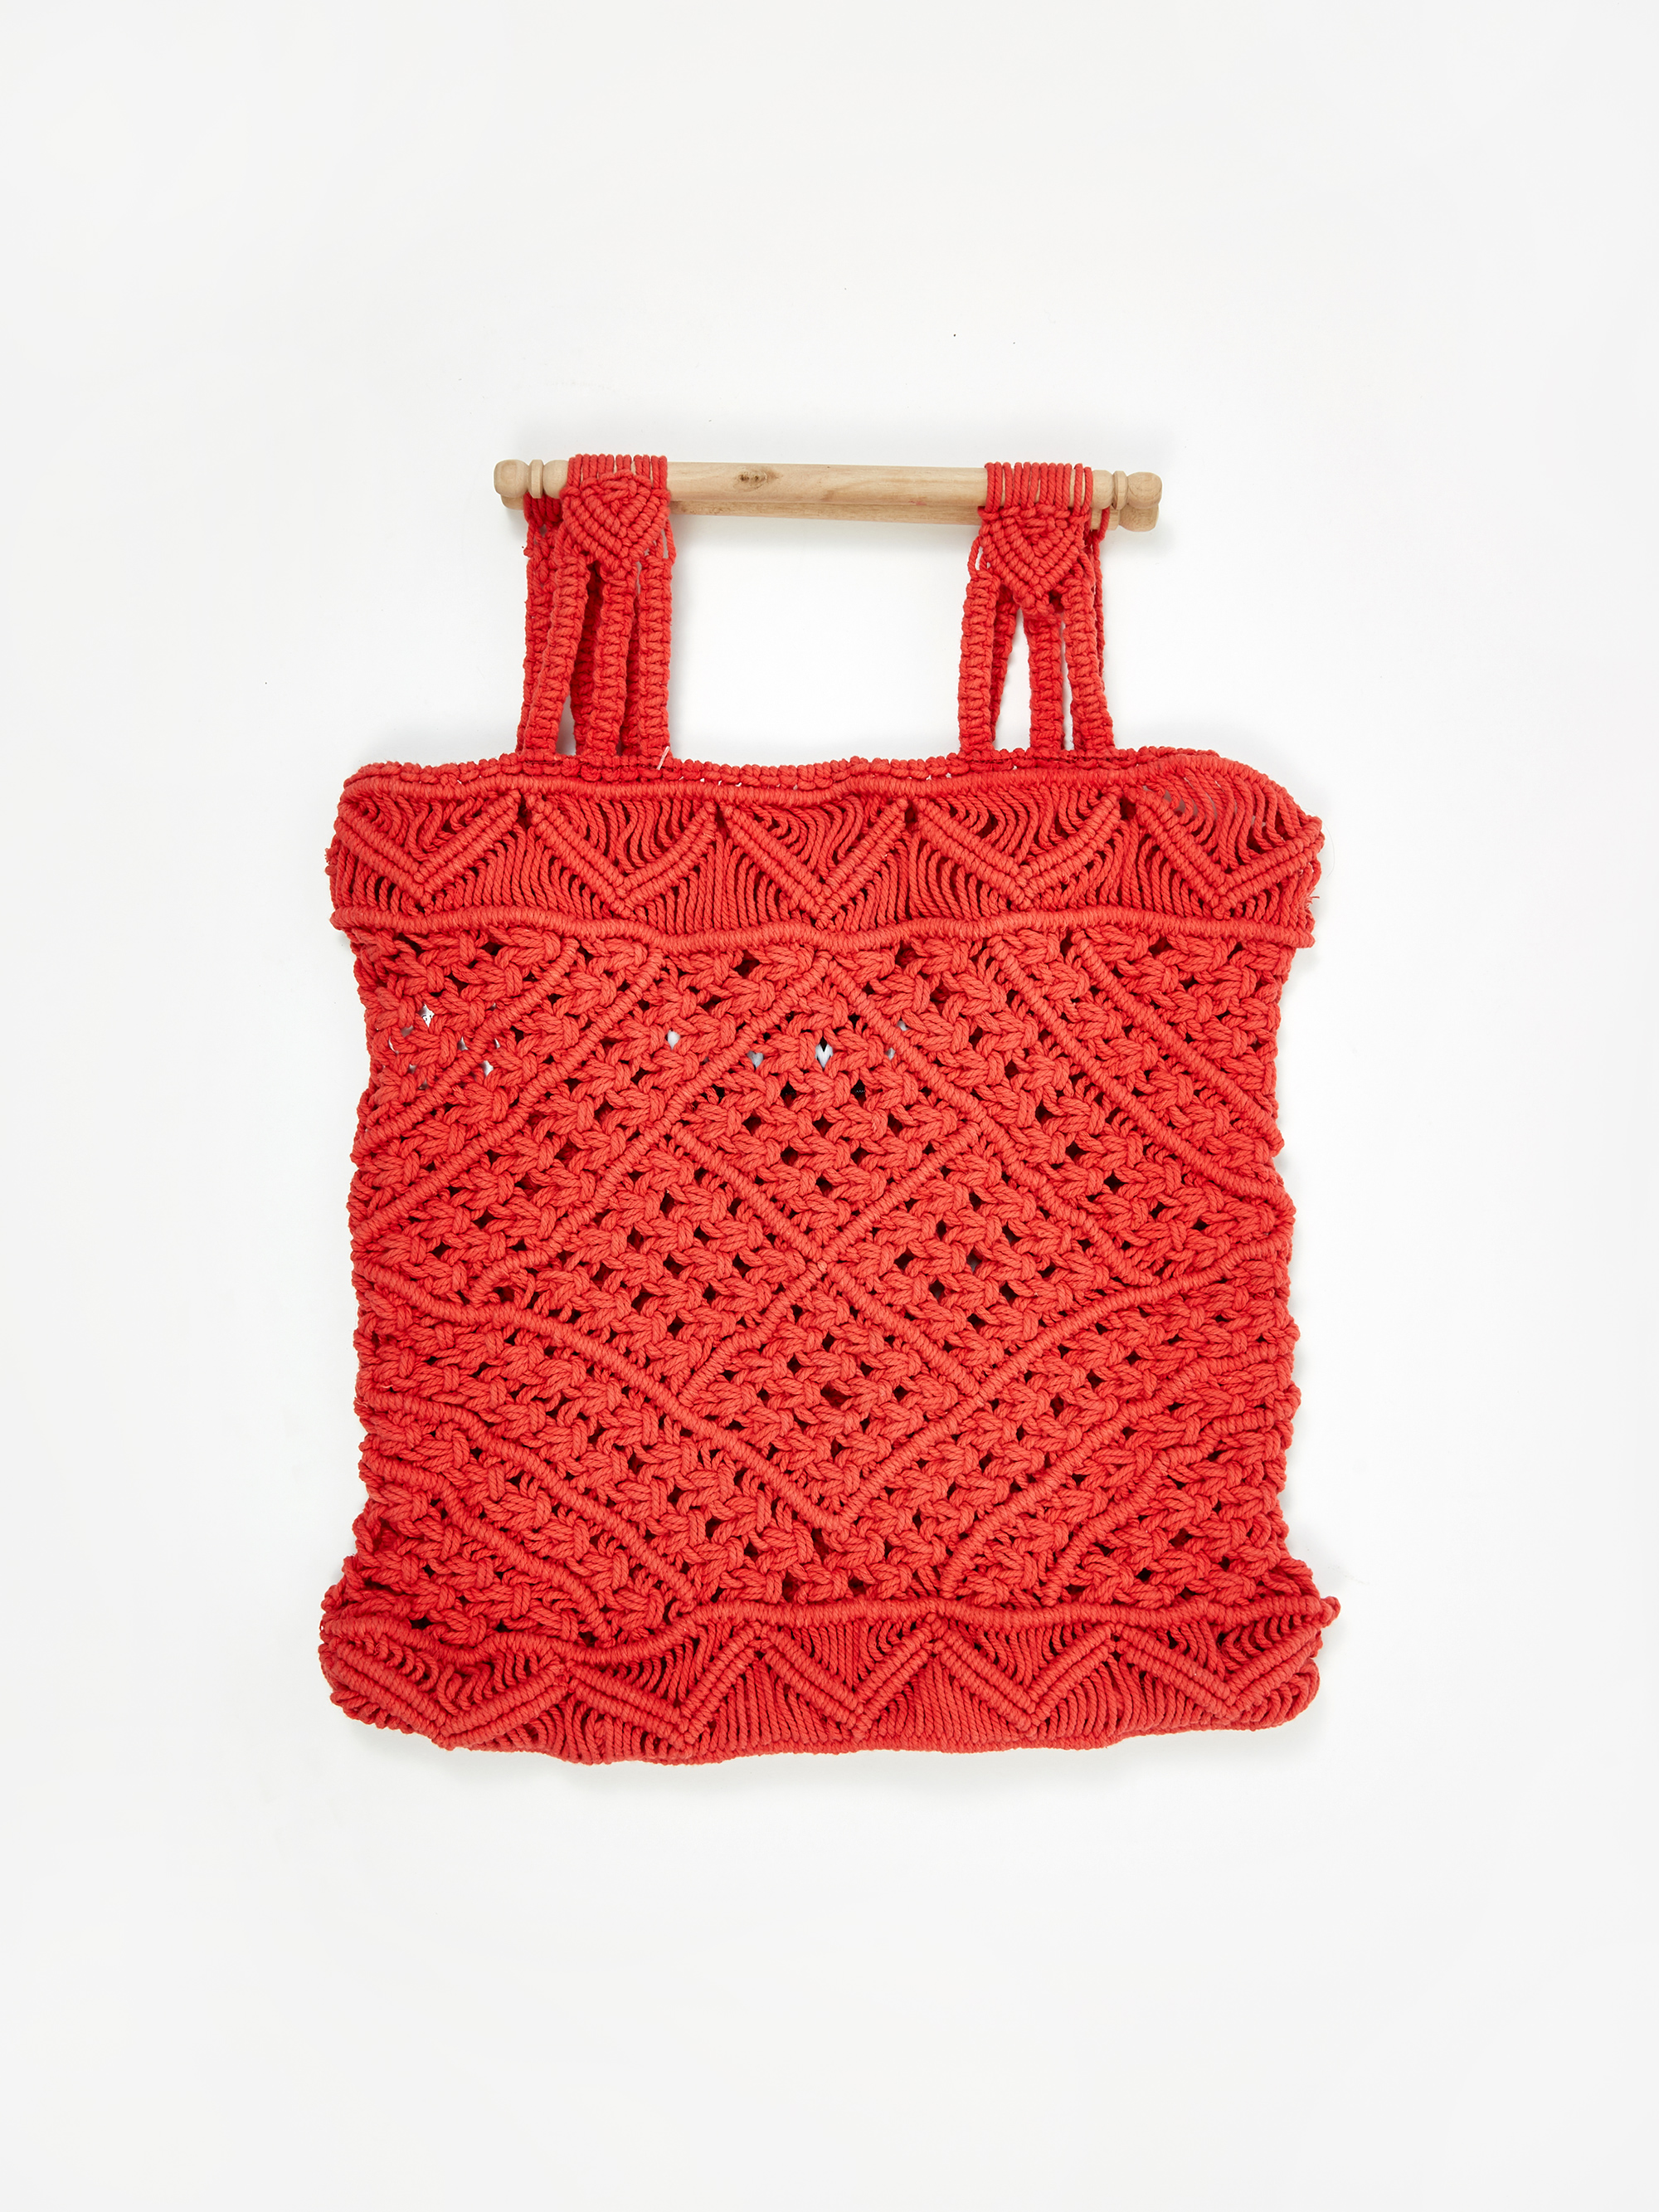 48f1f5064cef LF Markey Macrame Bag - Vermillion